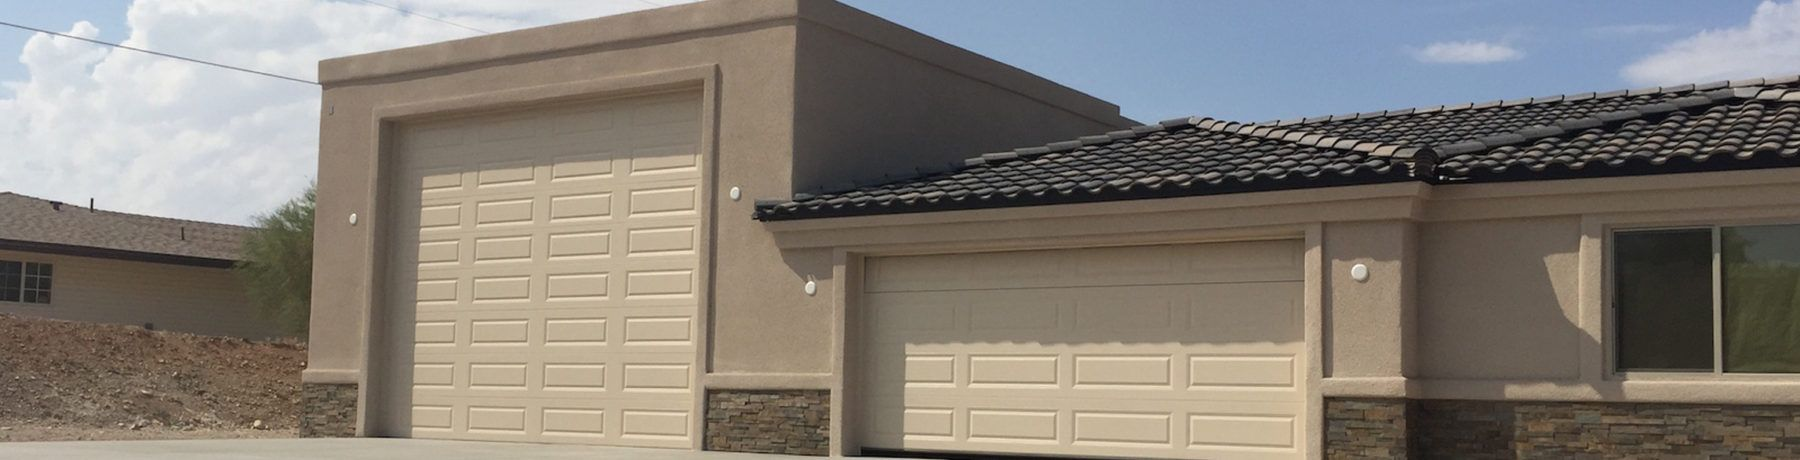 phoenix smart door installation doors garage automation